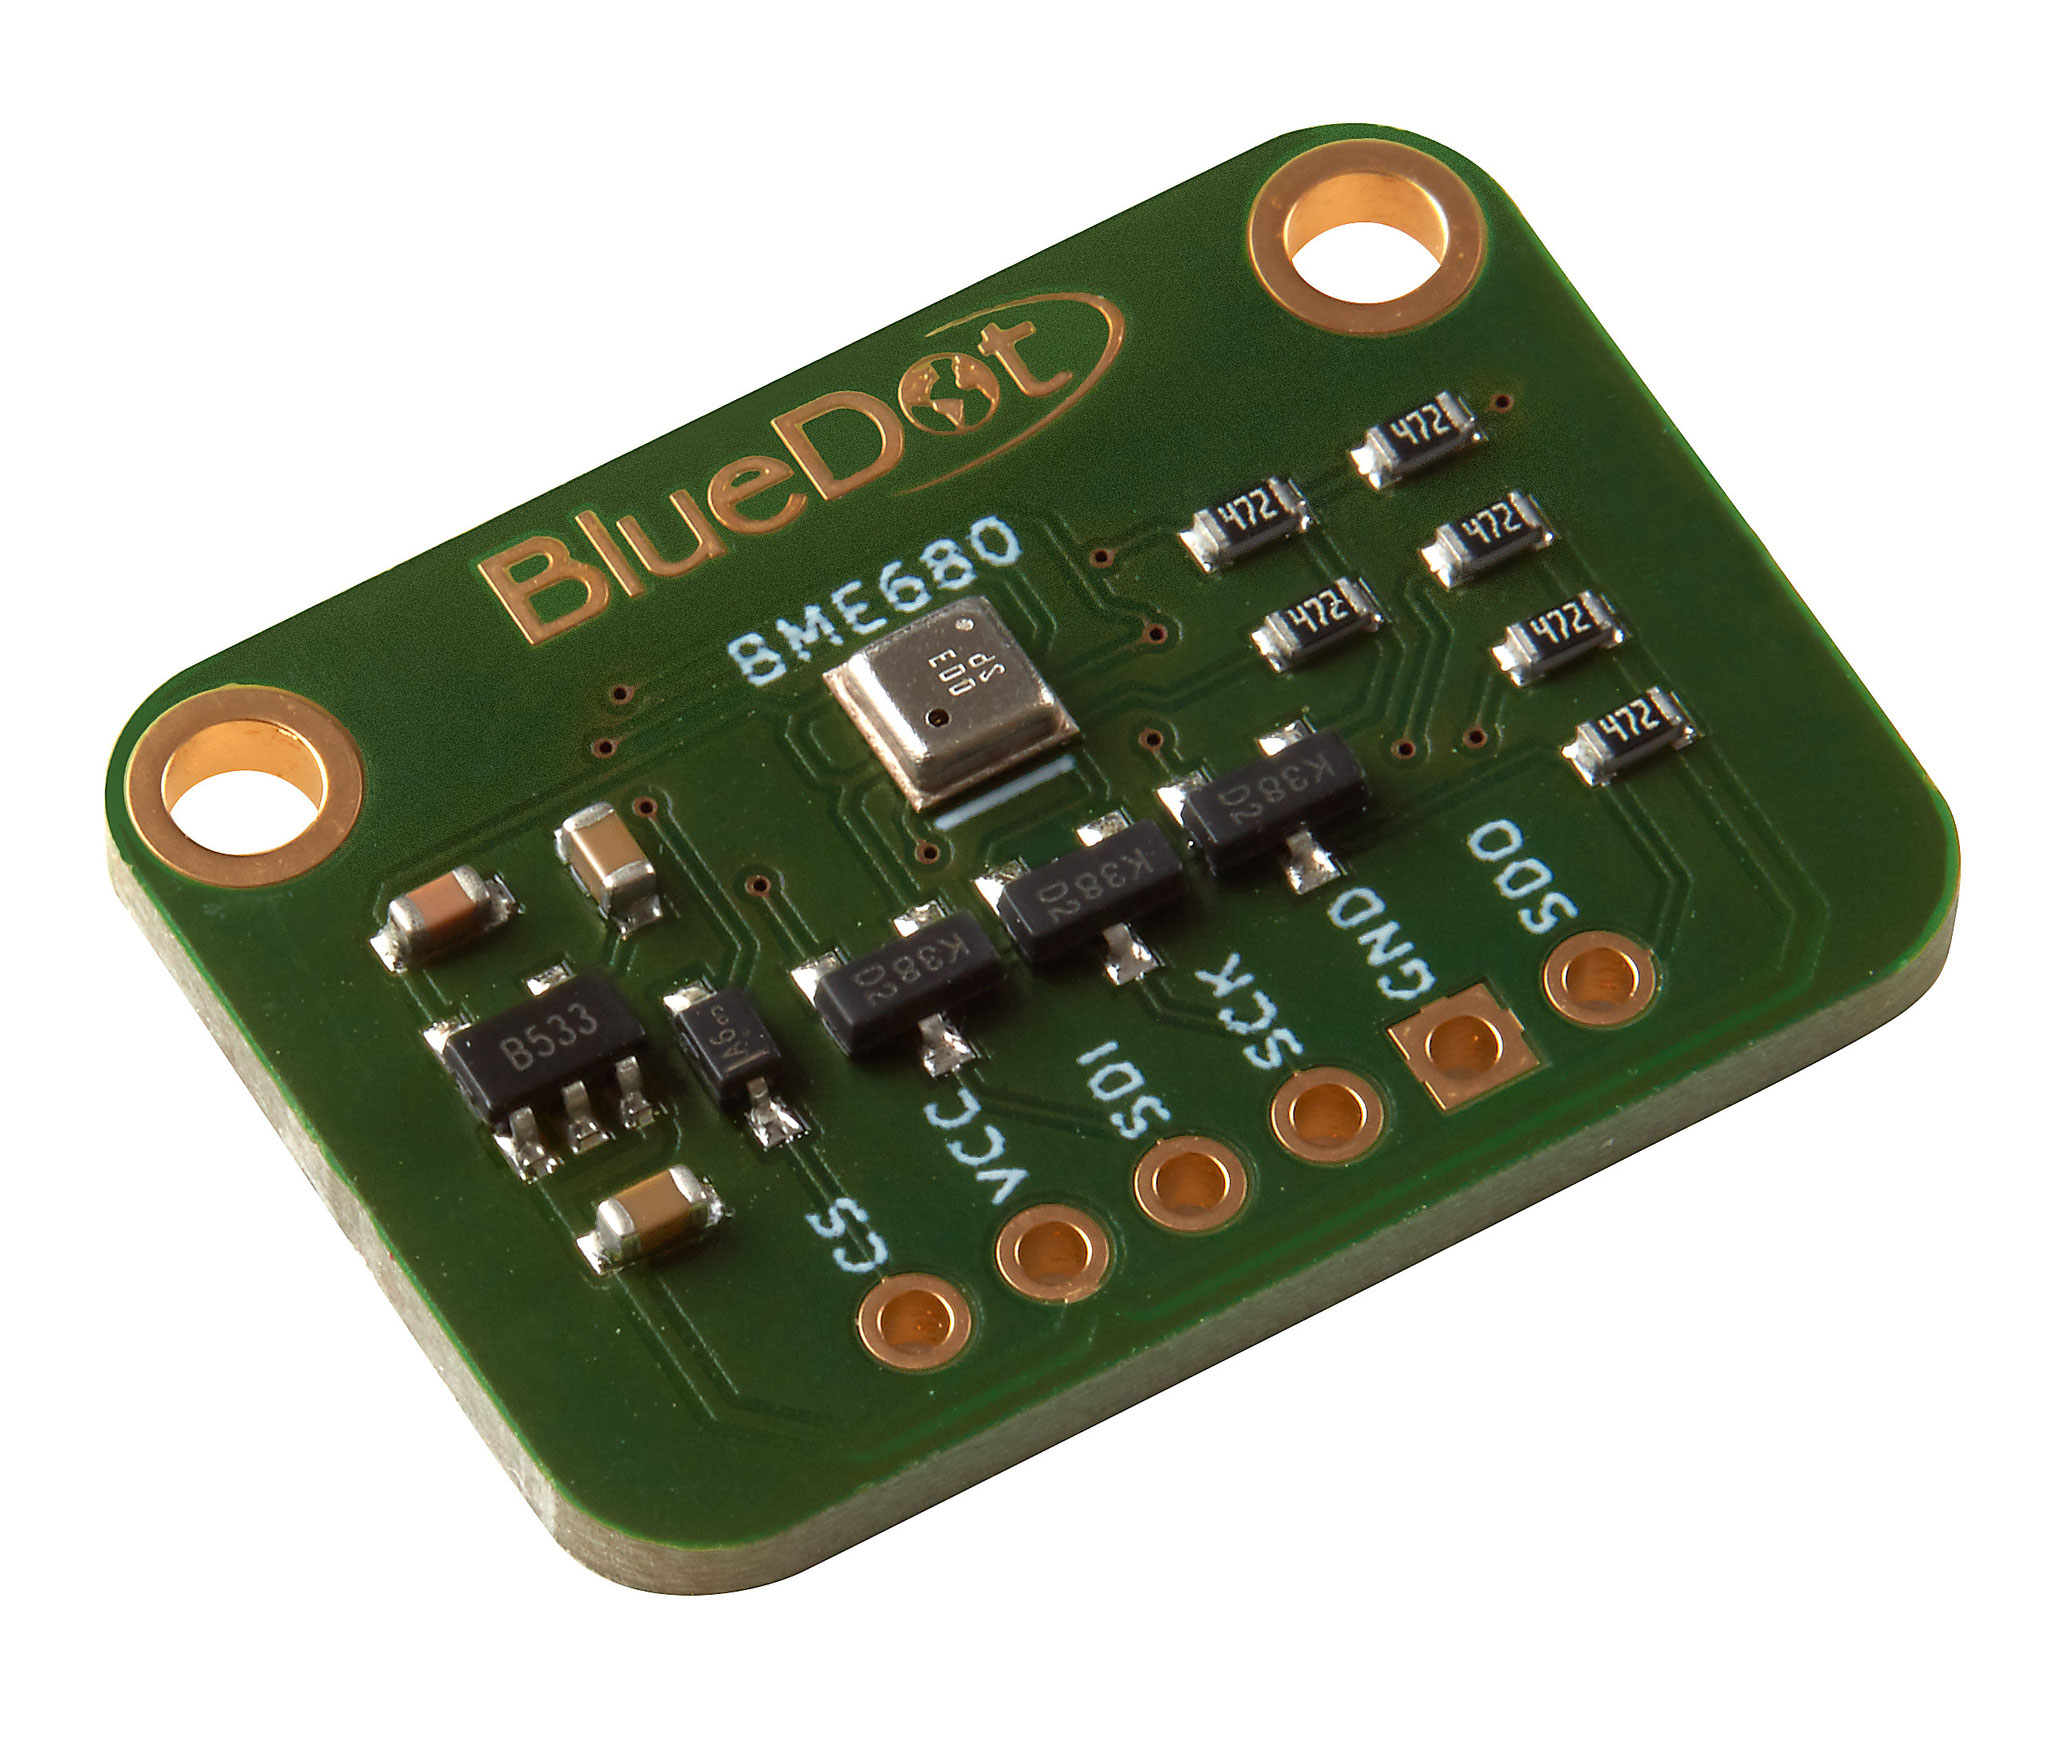 BME680 for Arduino - BlueDot Sensors